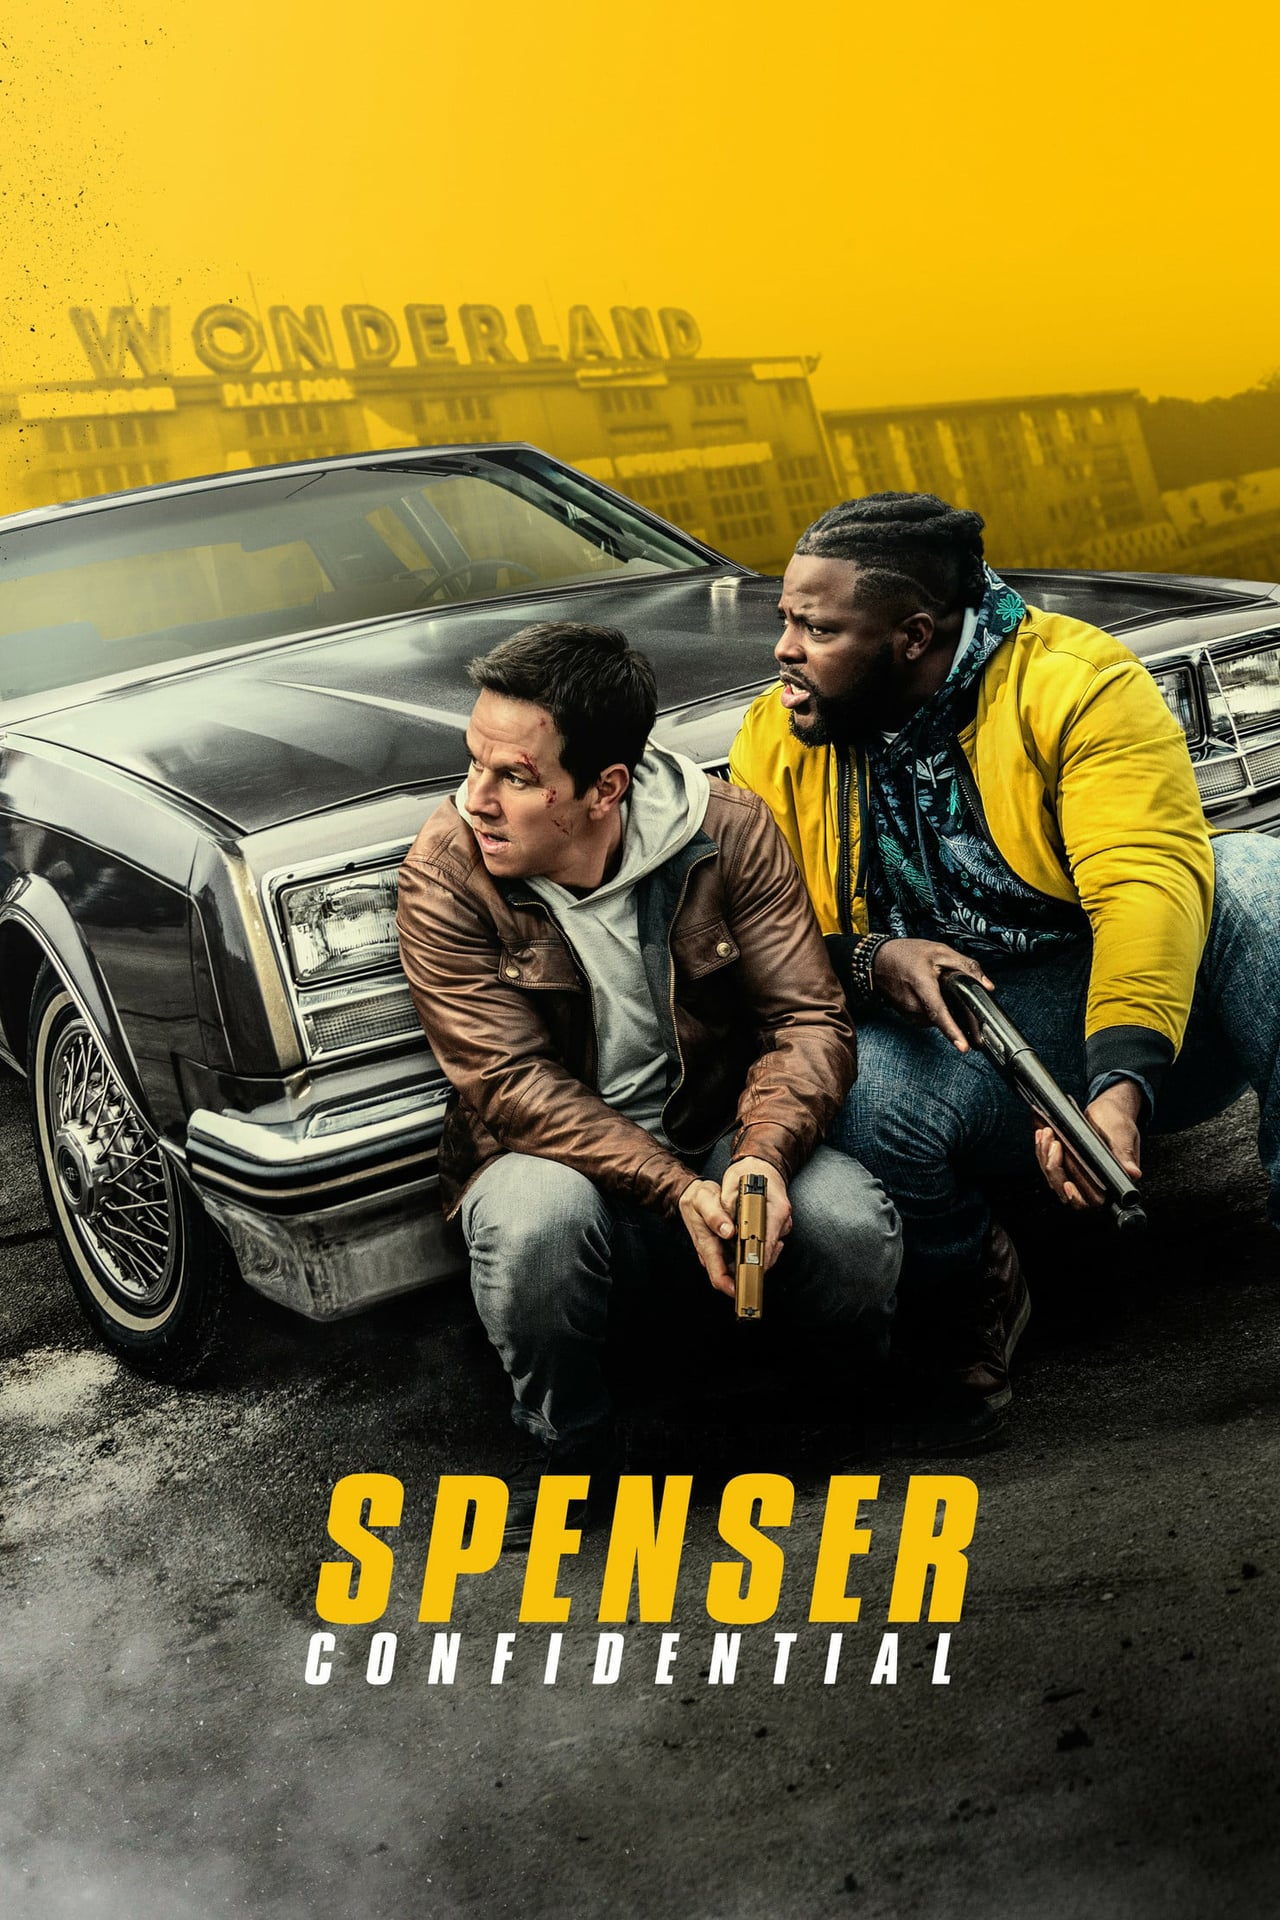 Spenser Kanunları – Spenser Confidential (2020)